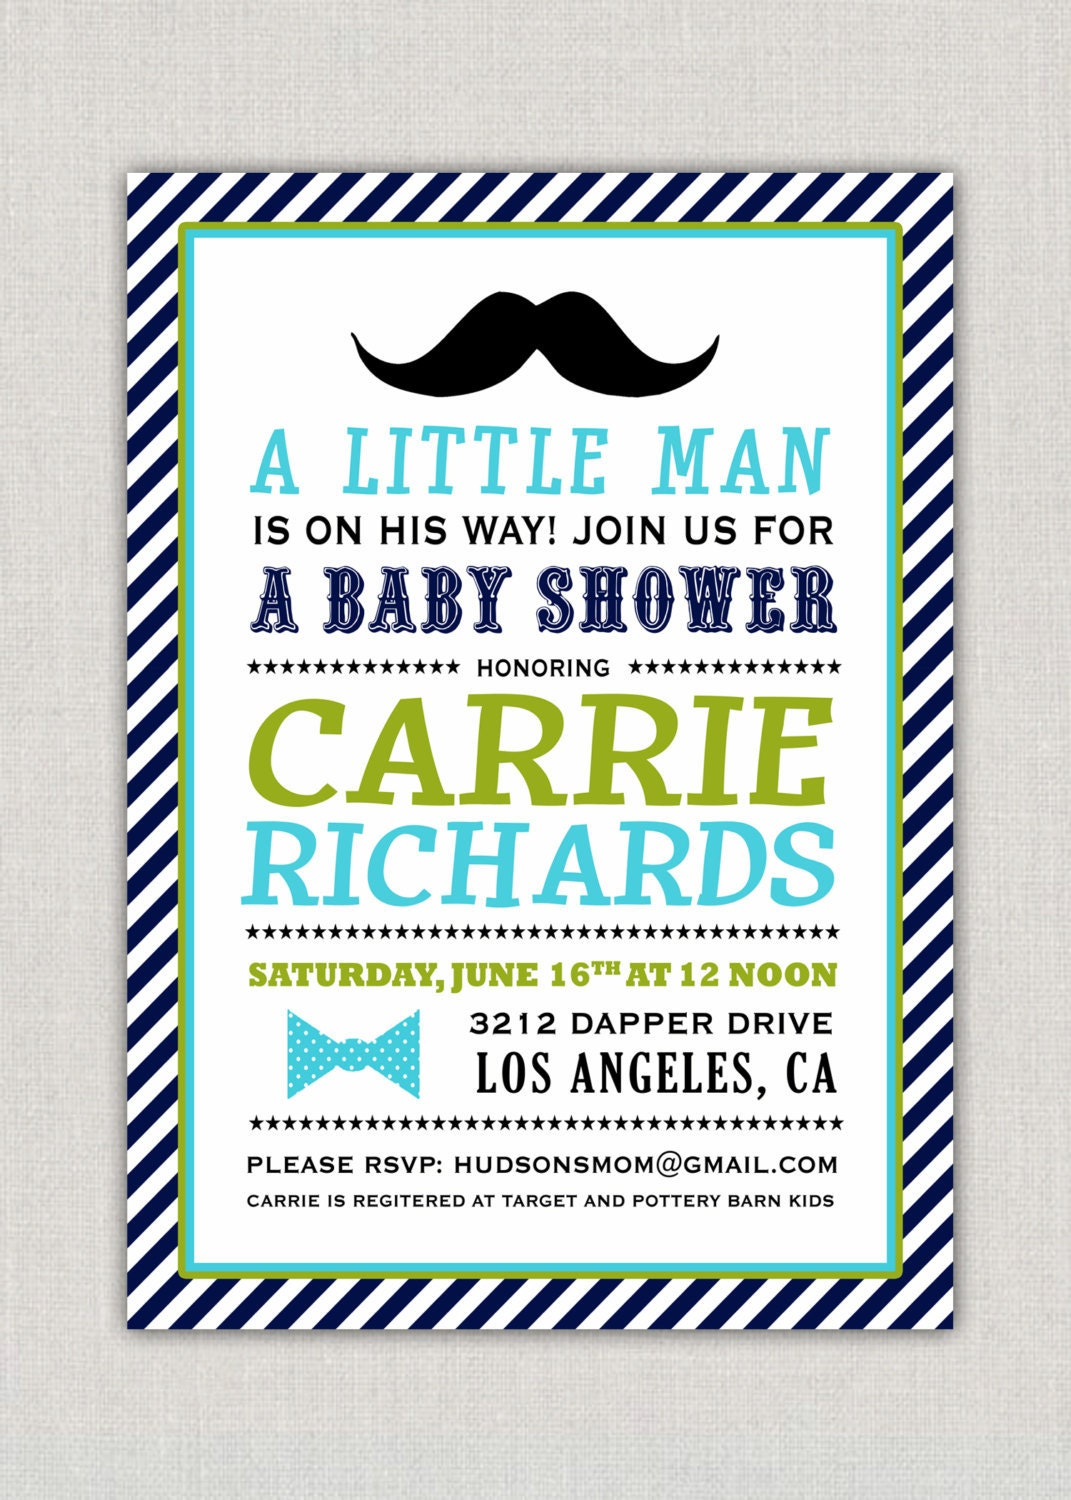 little man baby shower party invitation by announcingyou on etsy